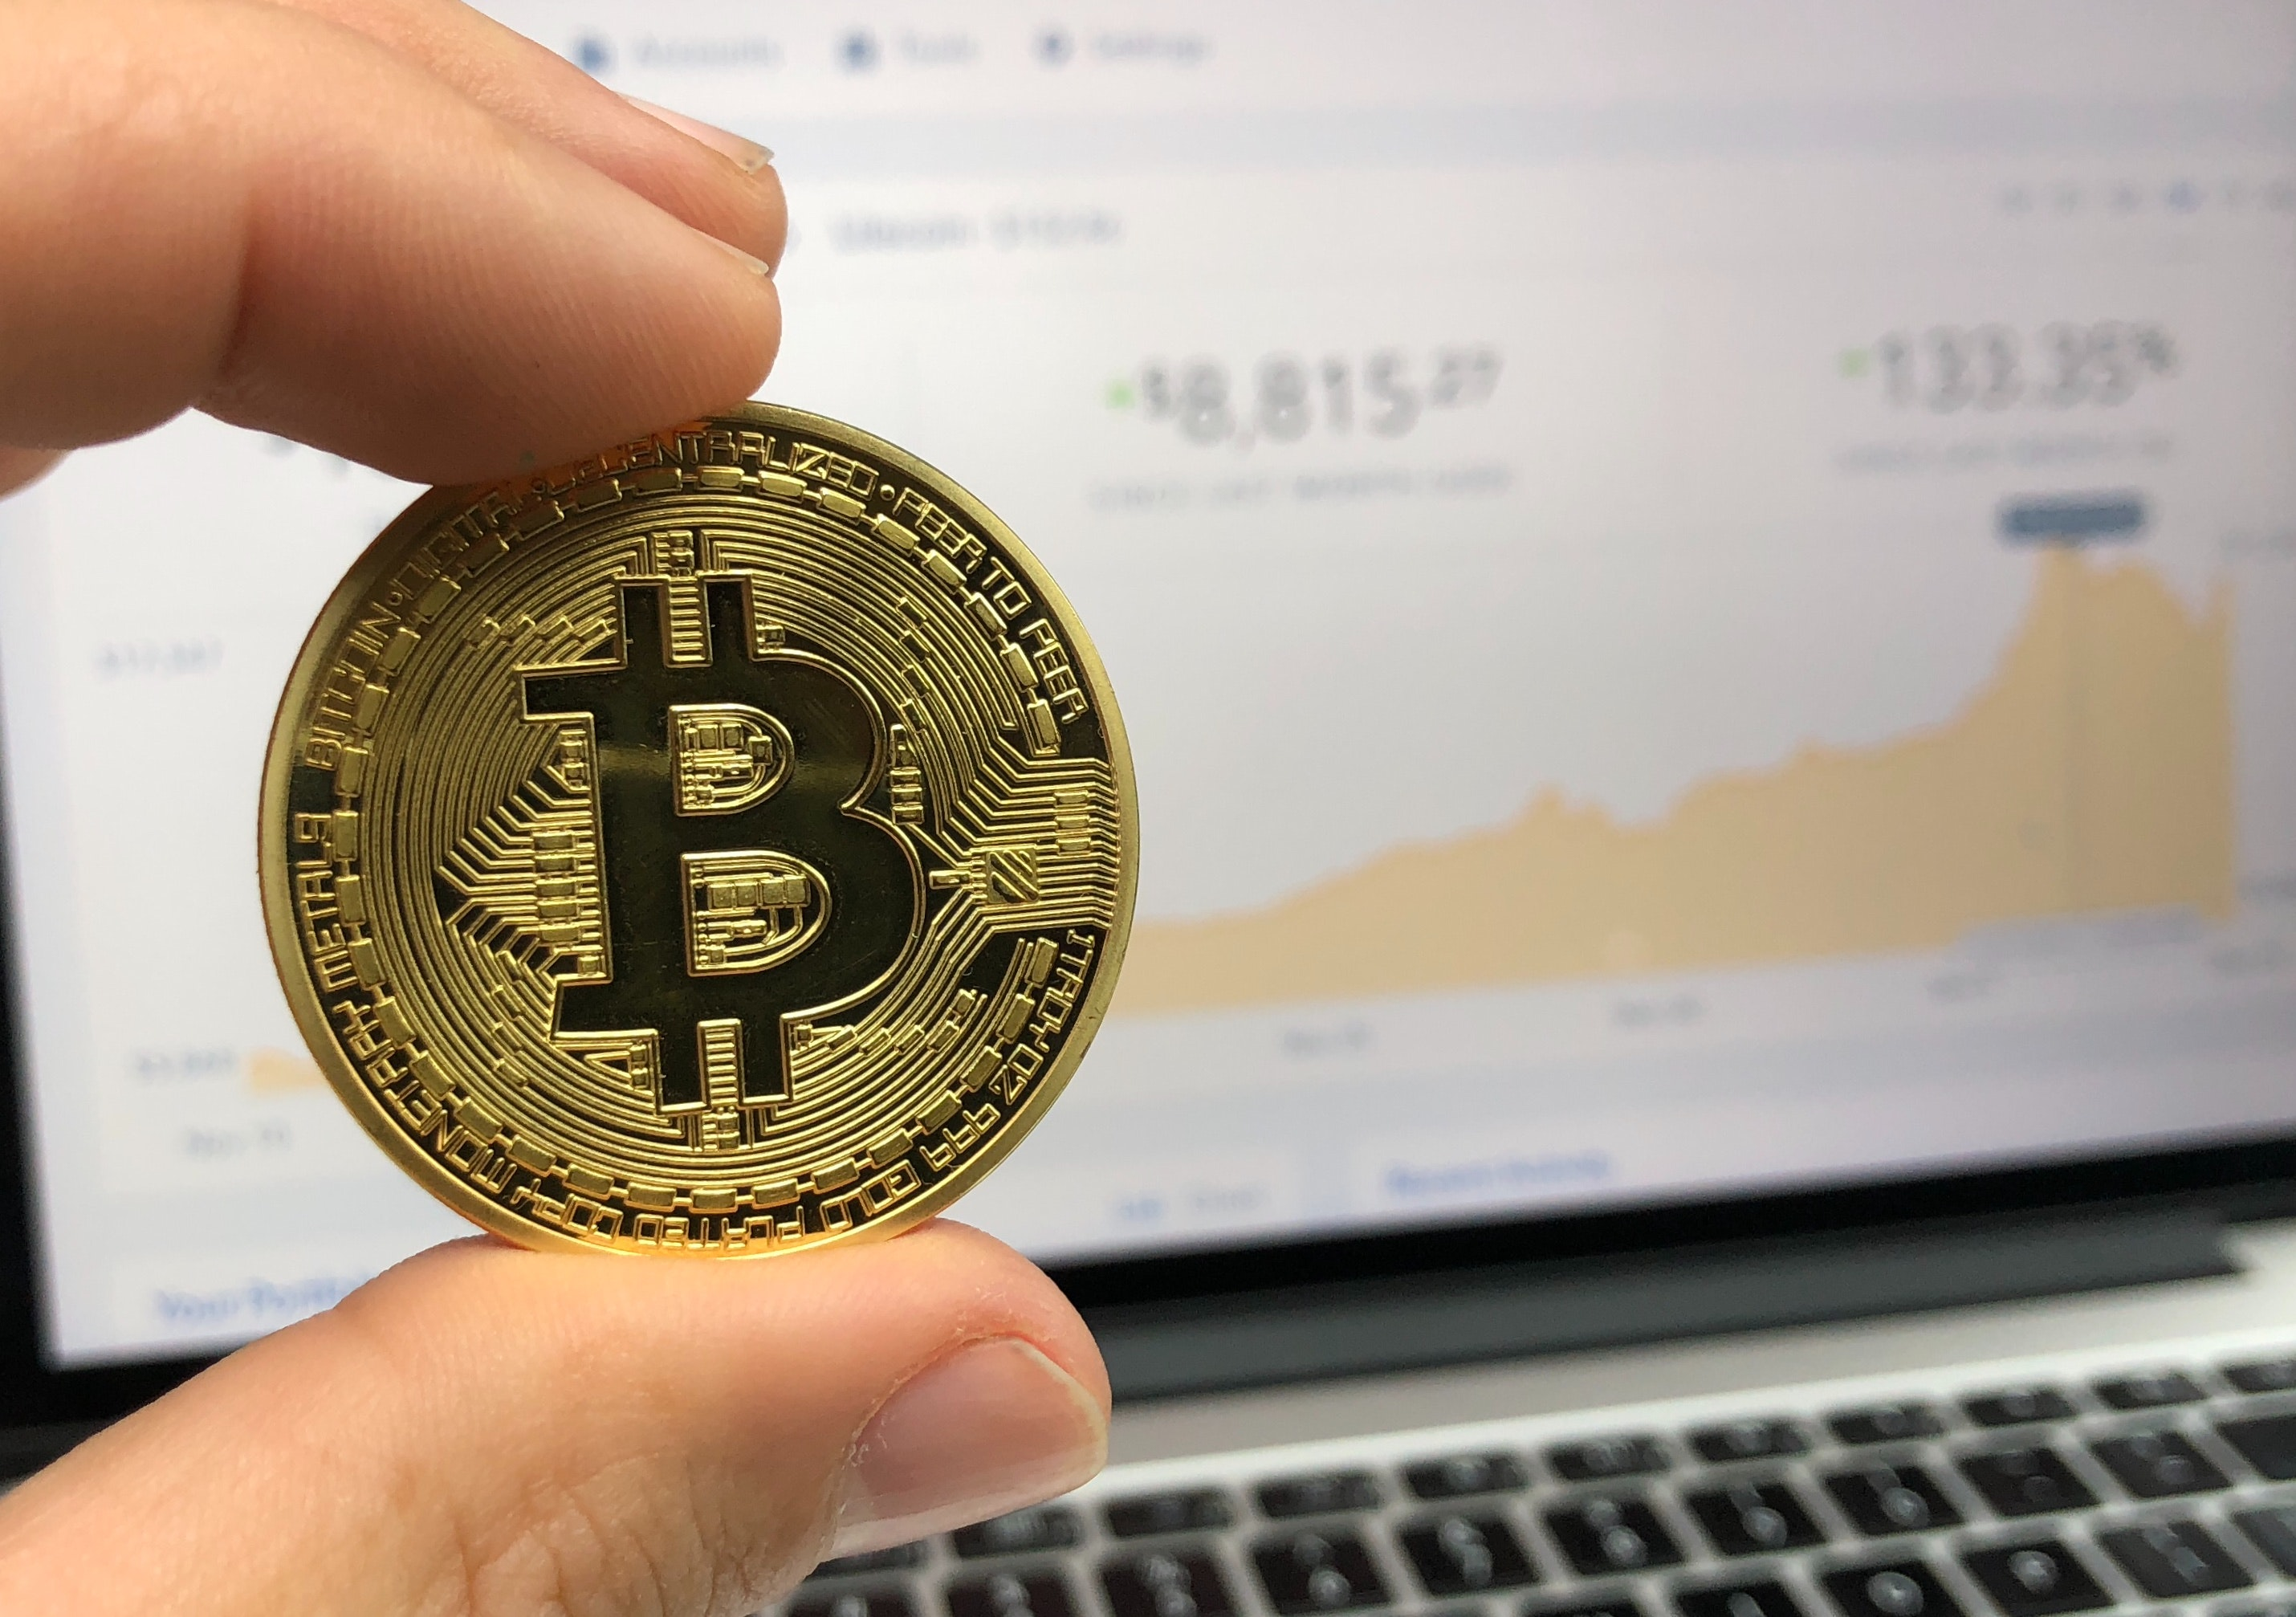 Round Gold-colored Bitcoin, Facts, Wealth, Technology, Success, HQ Photo